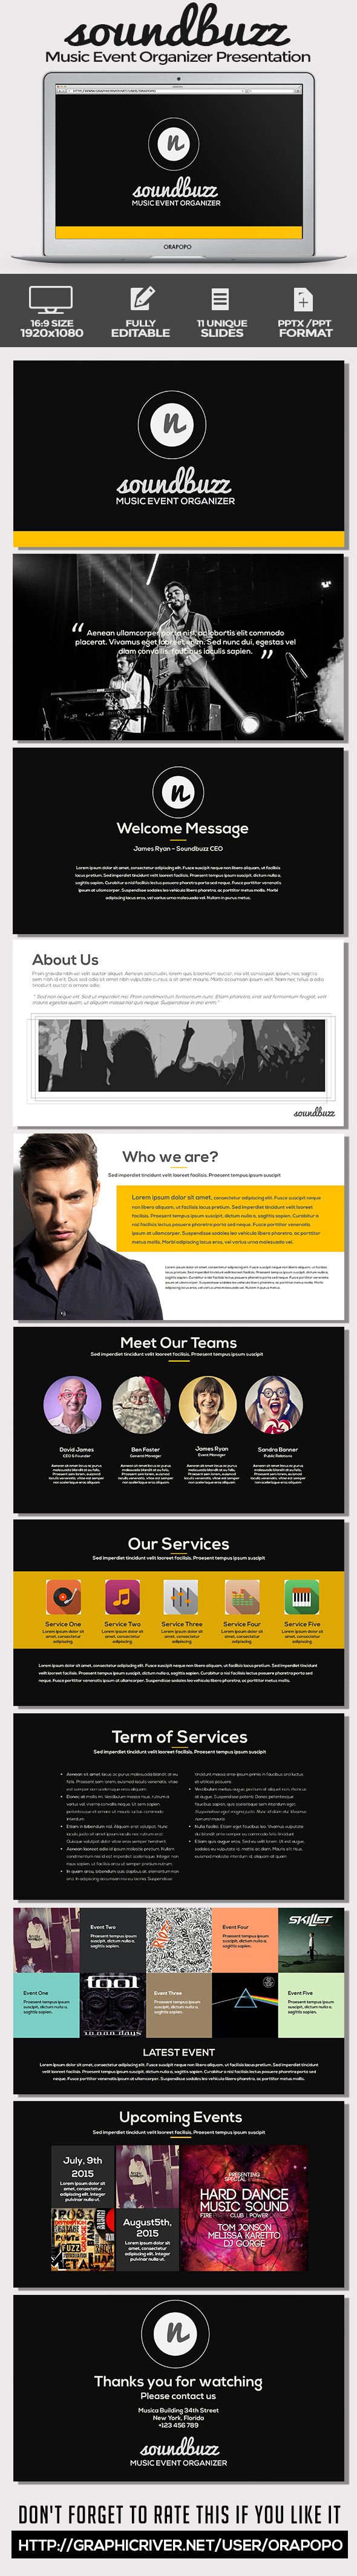 GraphicRiver SoundBuzz Music Event Organizer Presentation 11296369